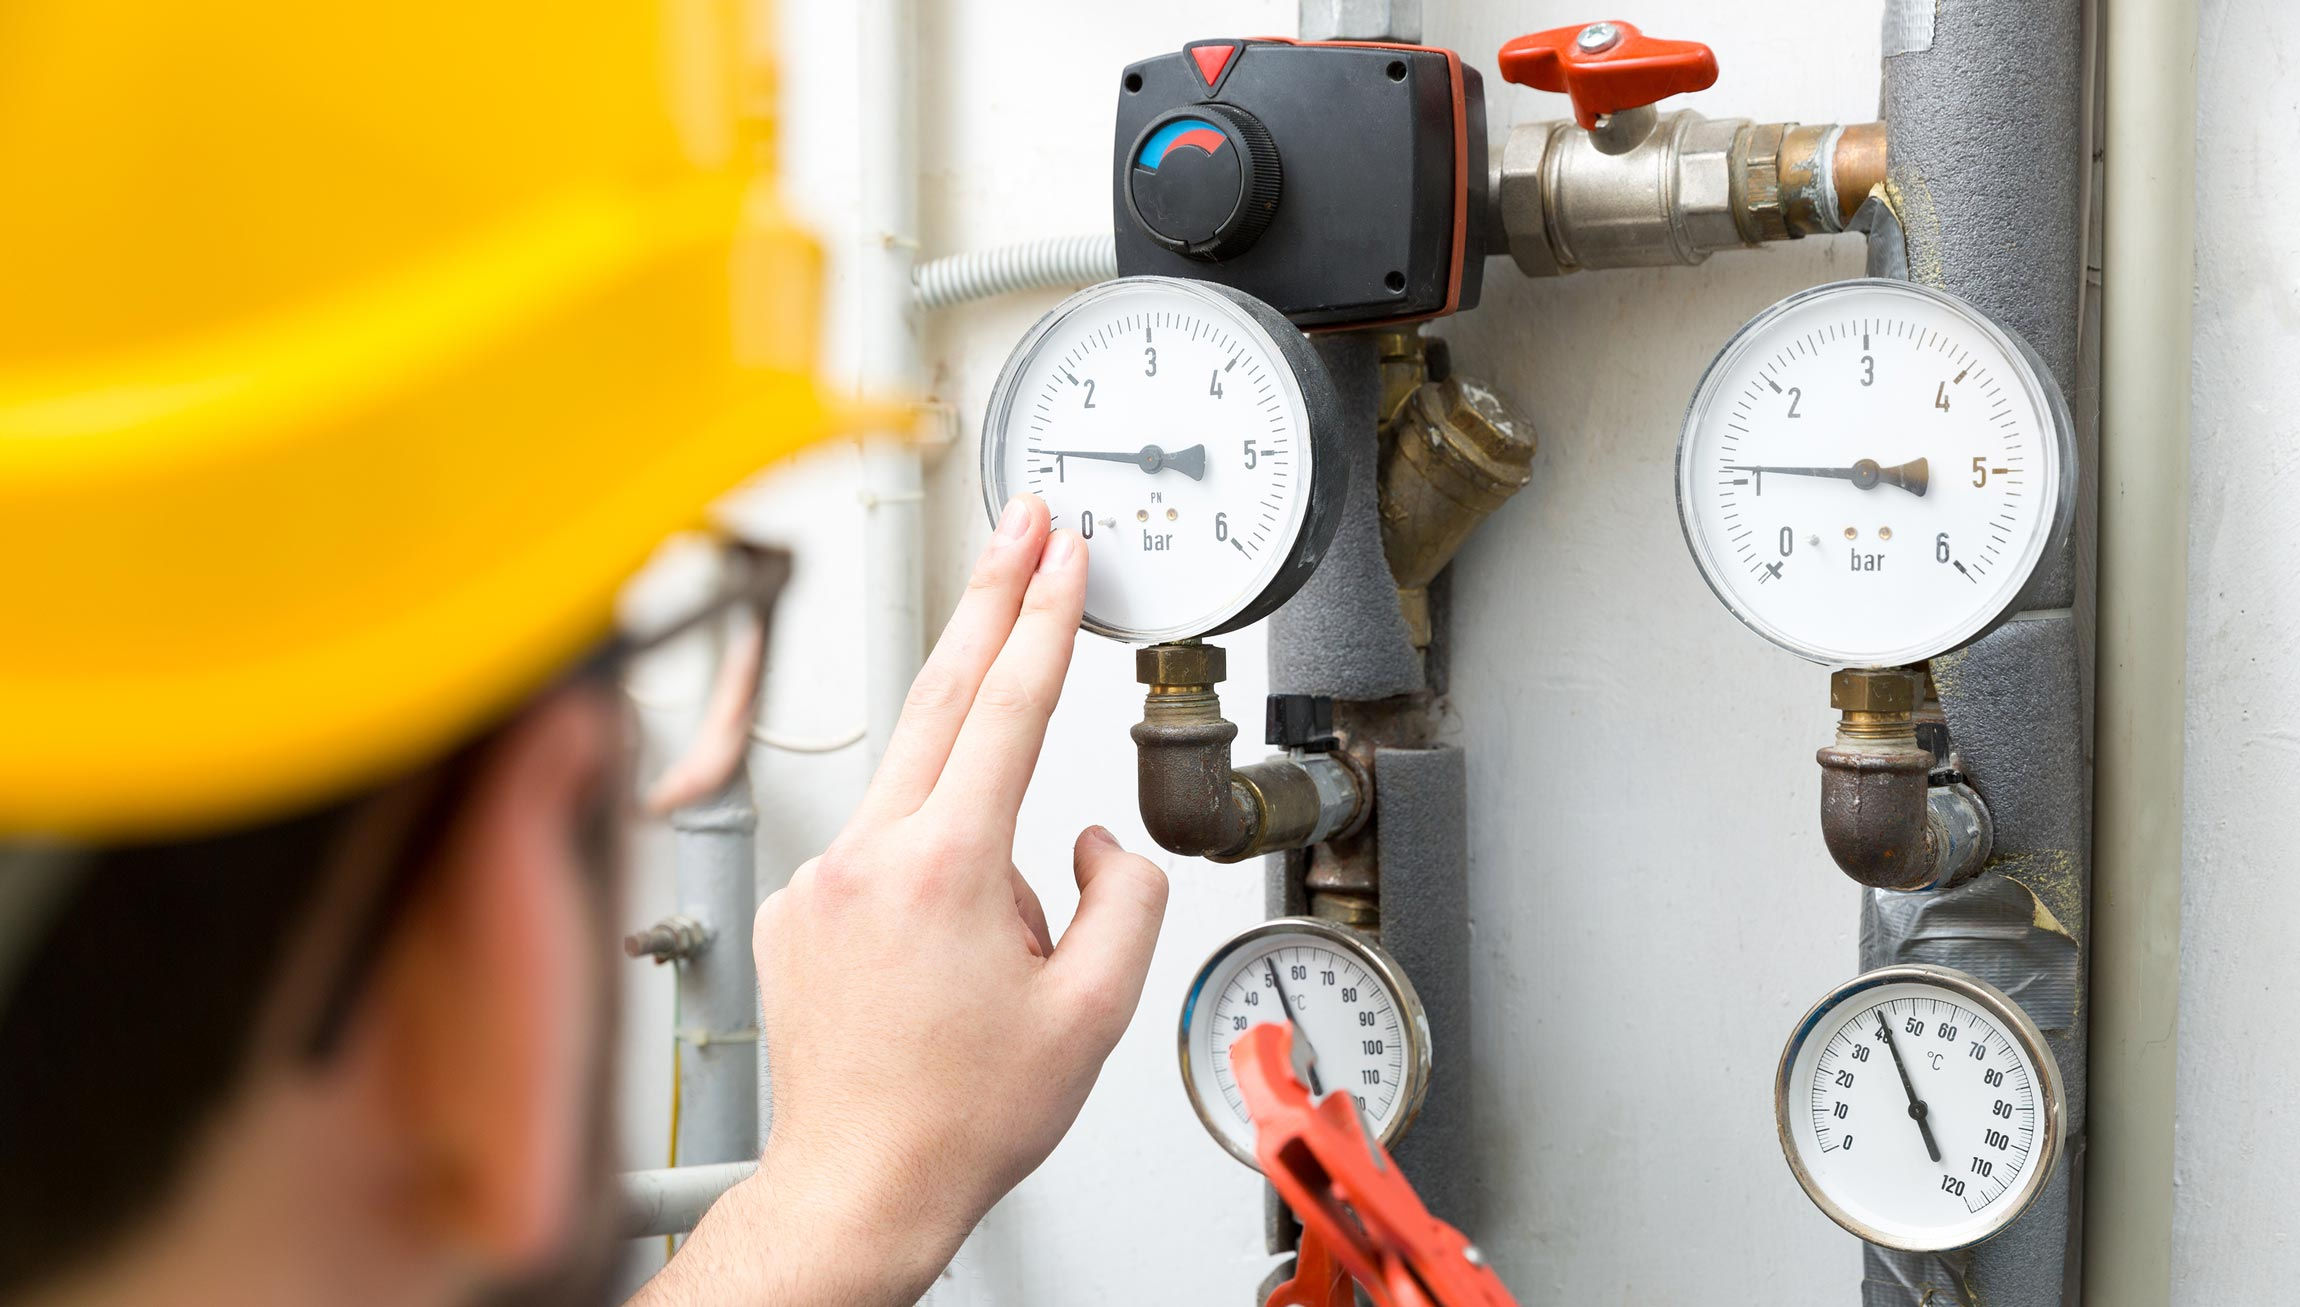 plumbing heating and air conditioning repairs and installations in ocean city nj